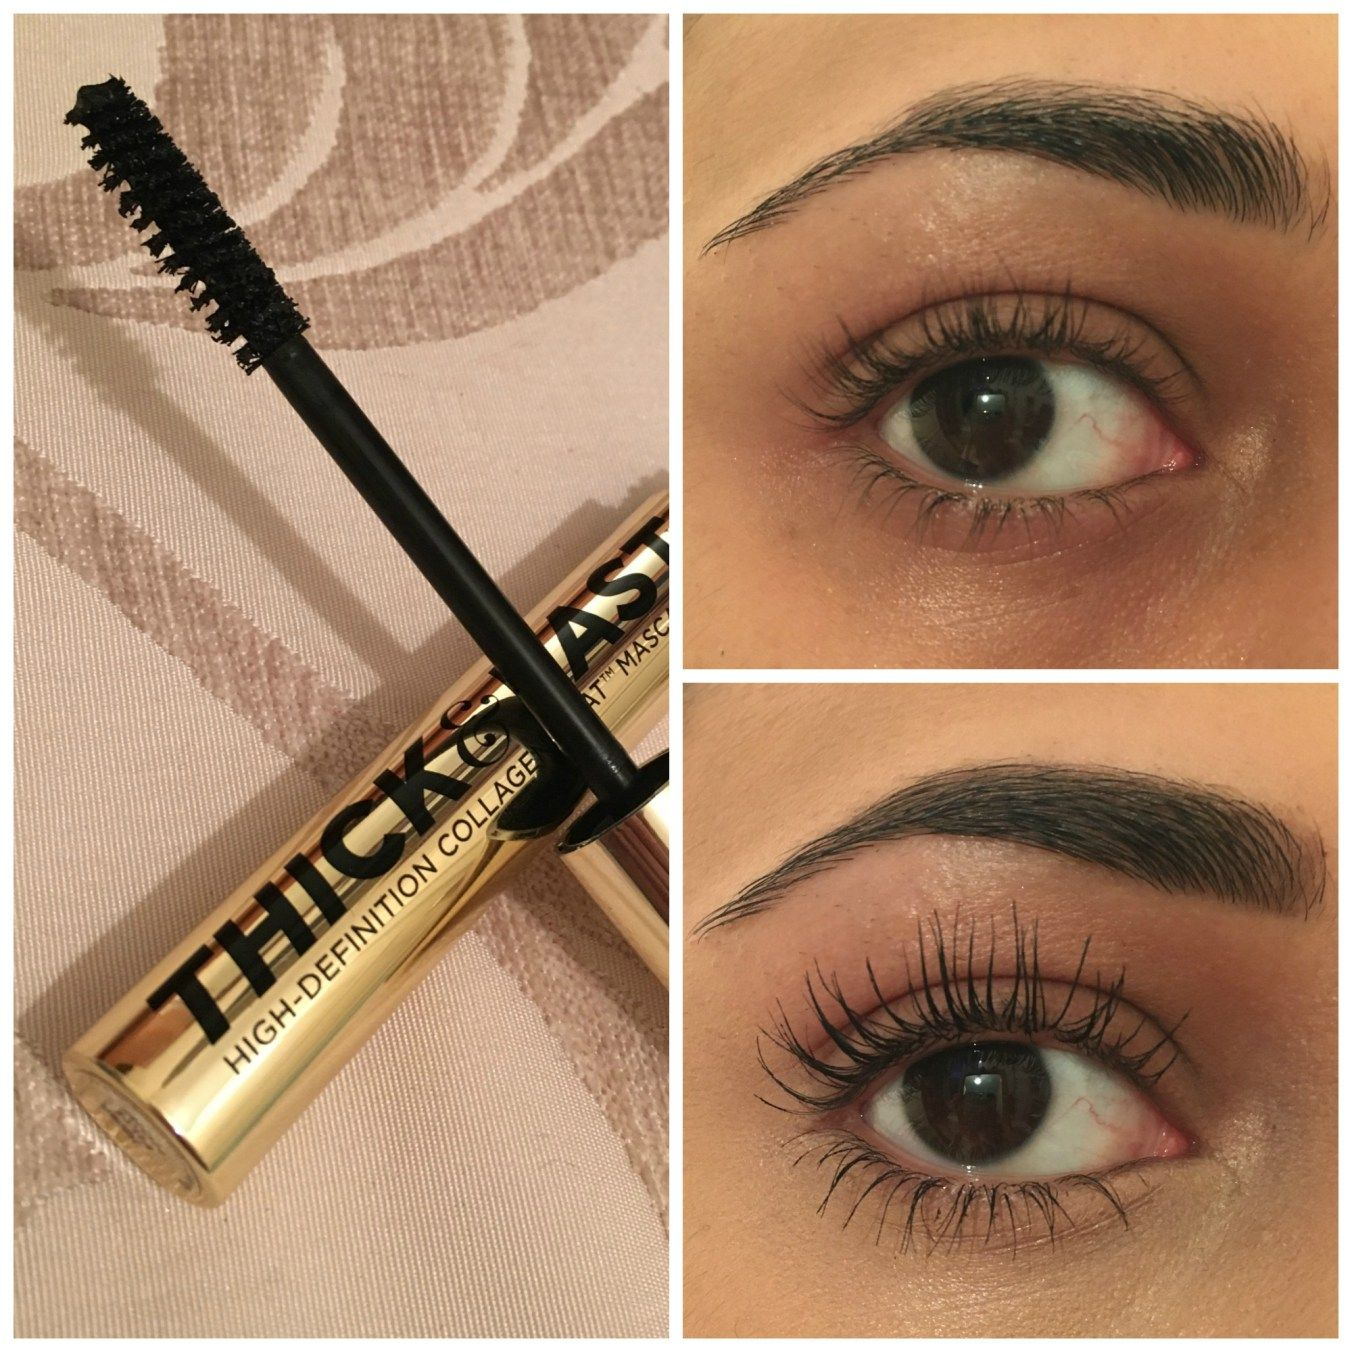 38883ab3e98 Soap & Glory Thick & Fast Lengthening Mascara Review - before and ...